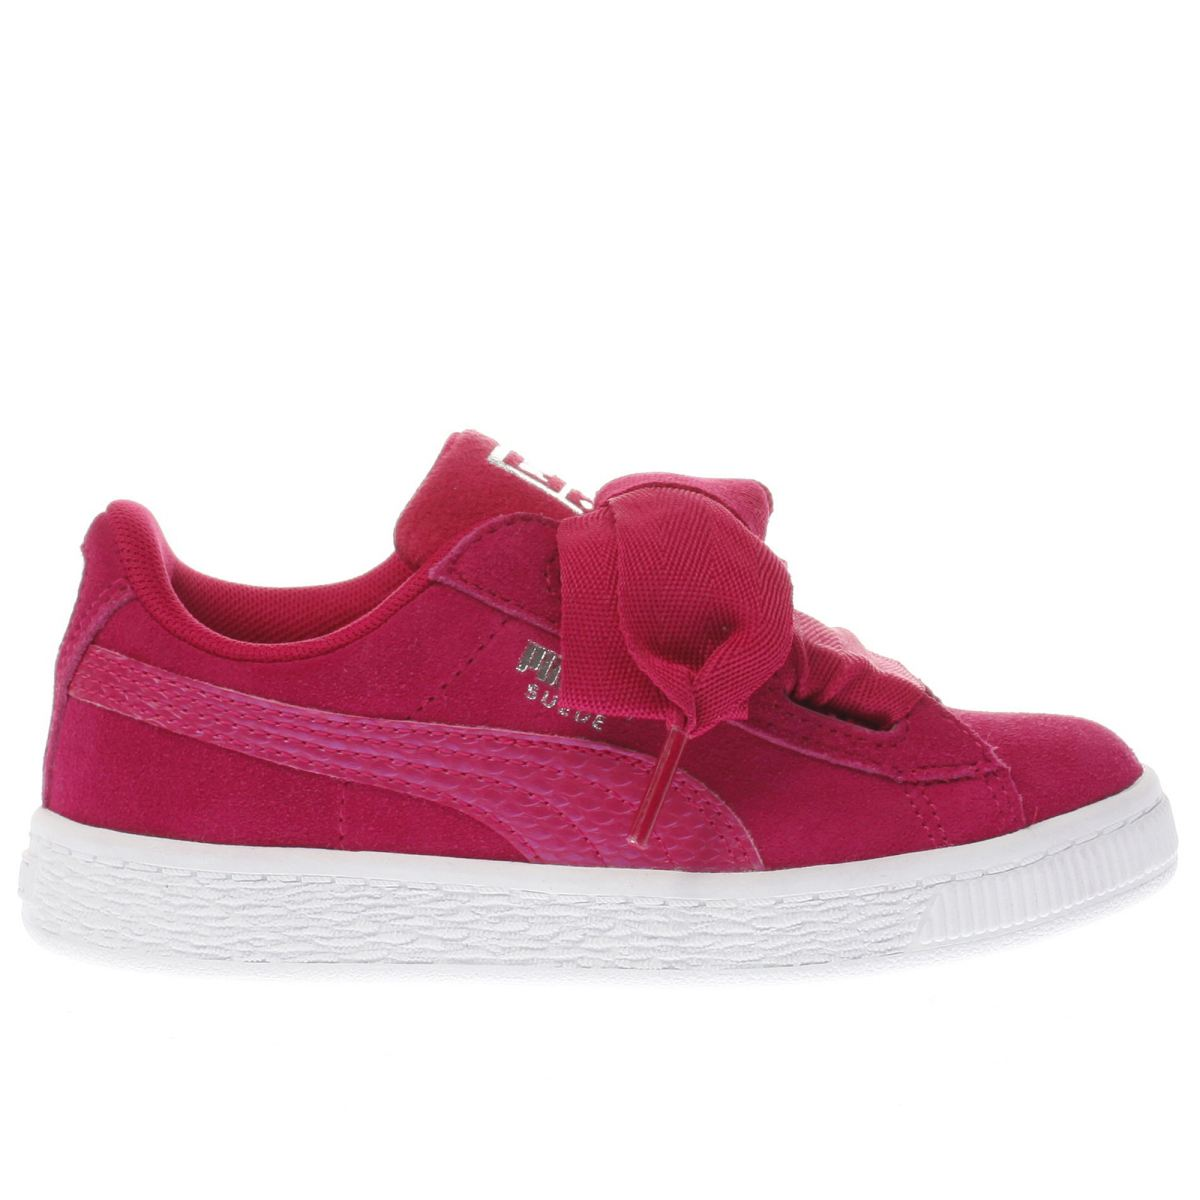 puma pink basket heart snake Girls Junior Trainers